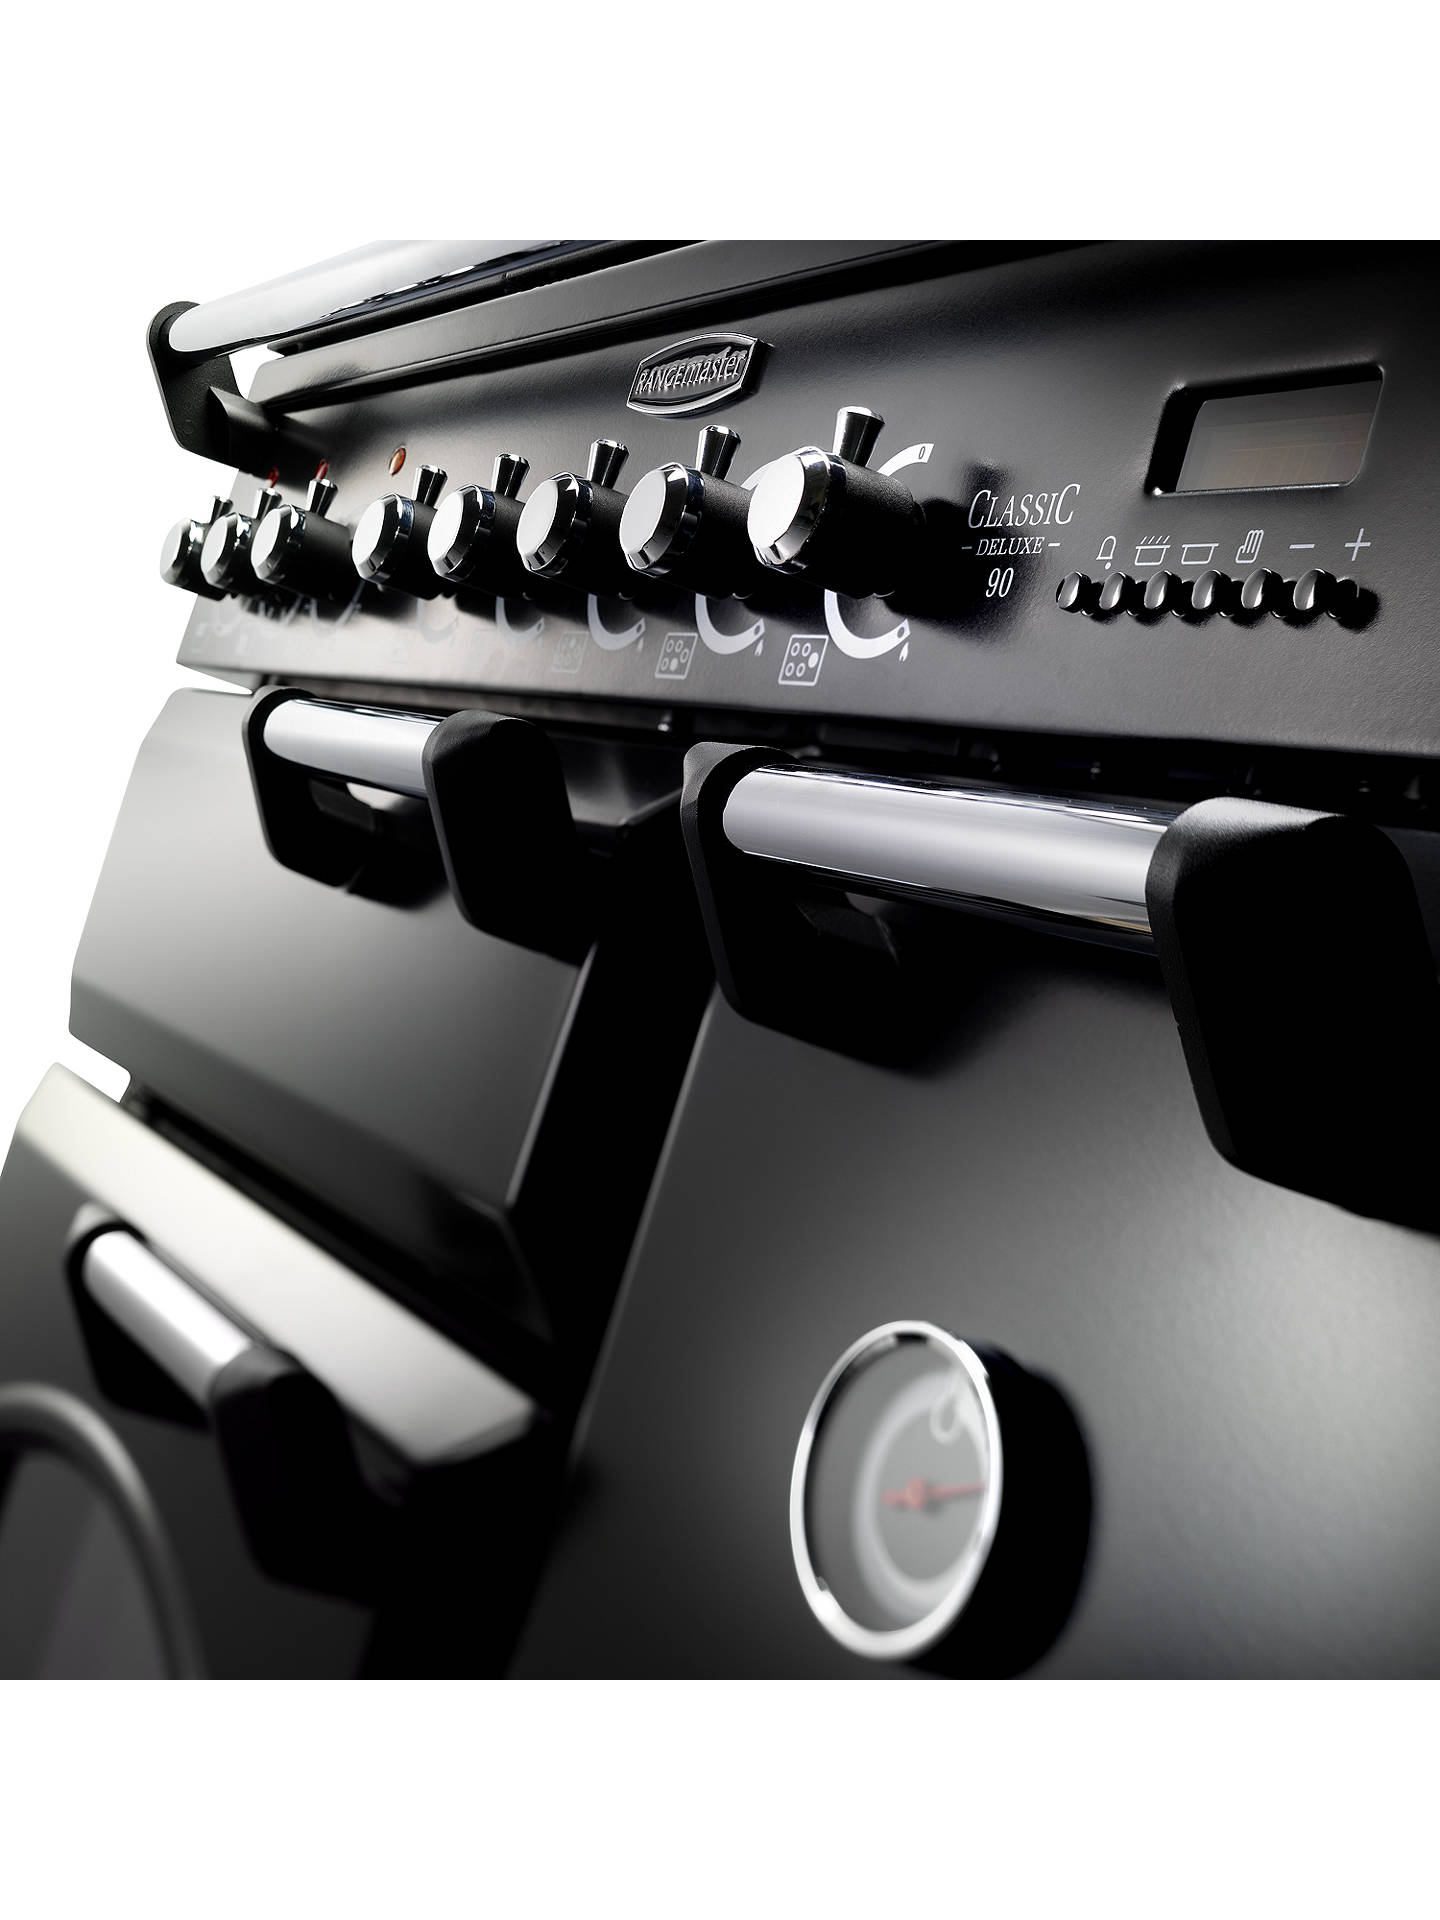 Buy Rangemaster Classic Deluxe 90 Electric Range Cooker, Black/Chrome Trim Online at johnlewis.com